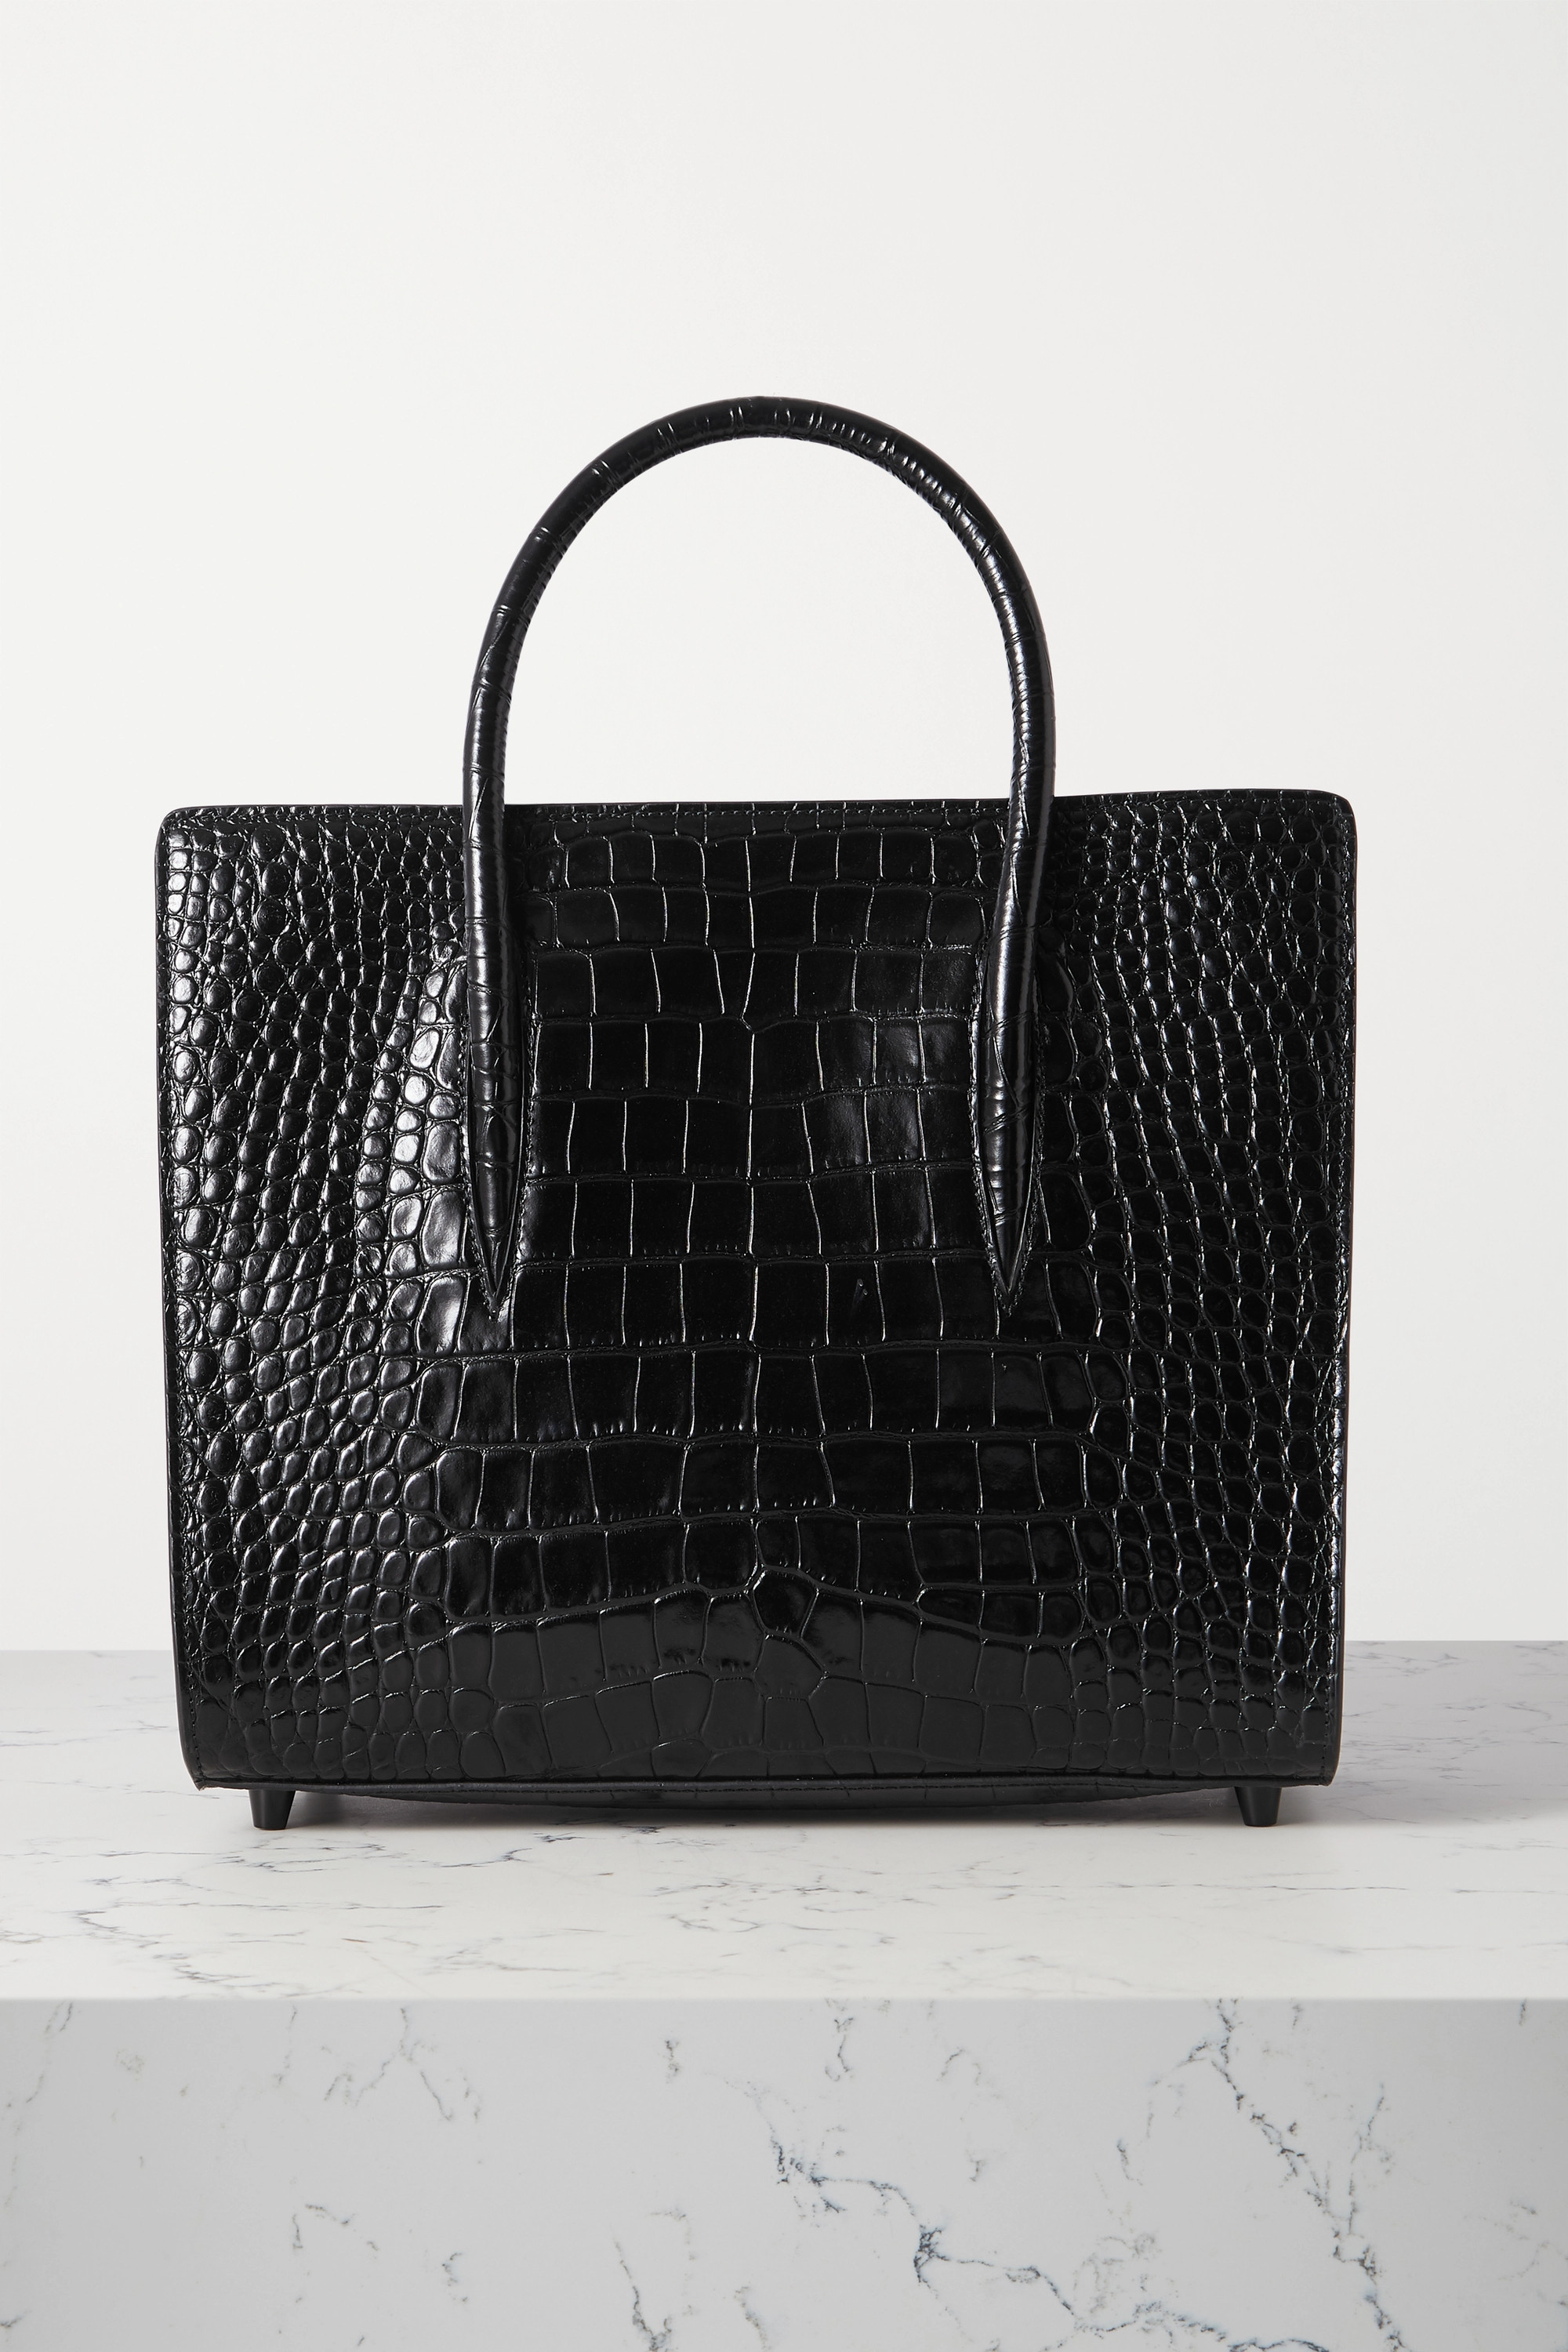 Christian Louboutin Paloma medium rubber-trimmed croc-effect leather tote